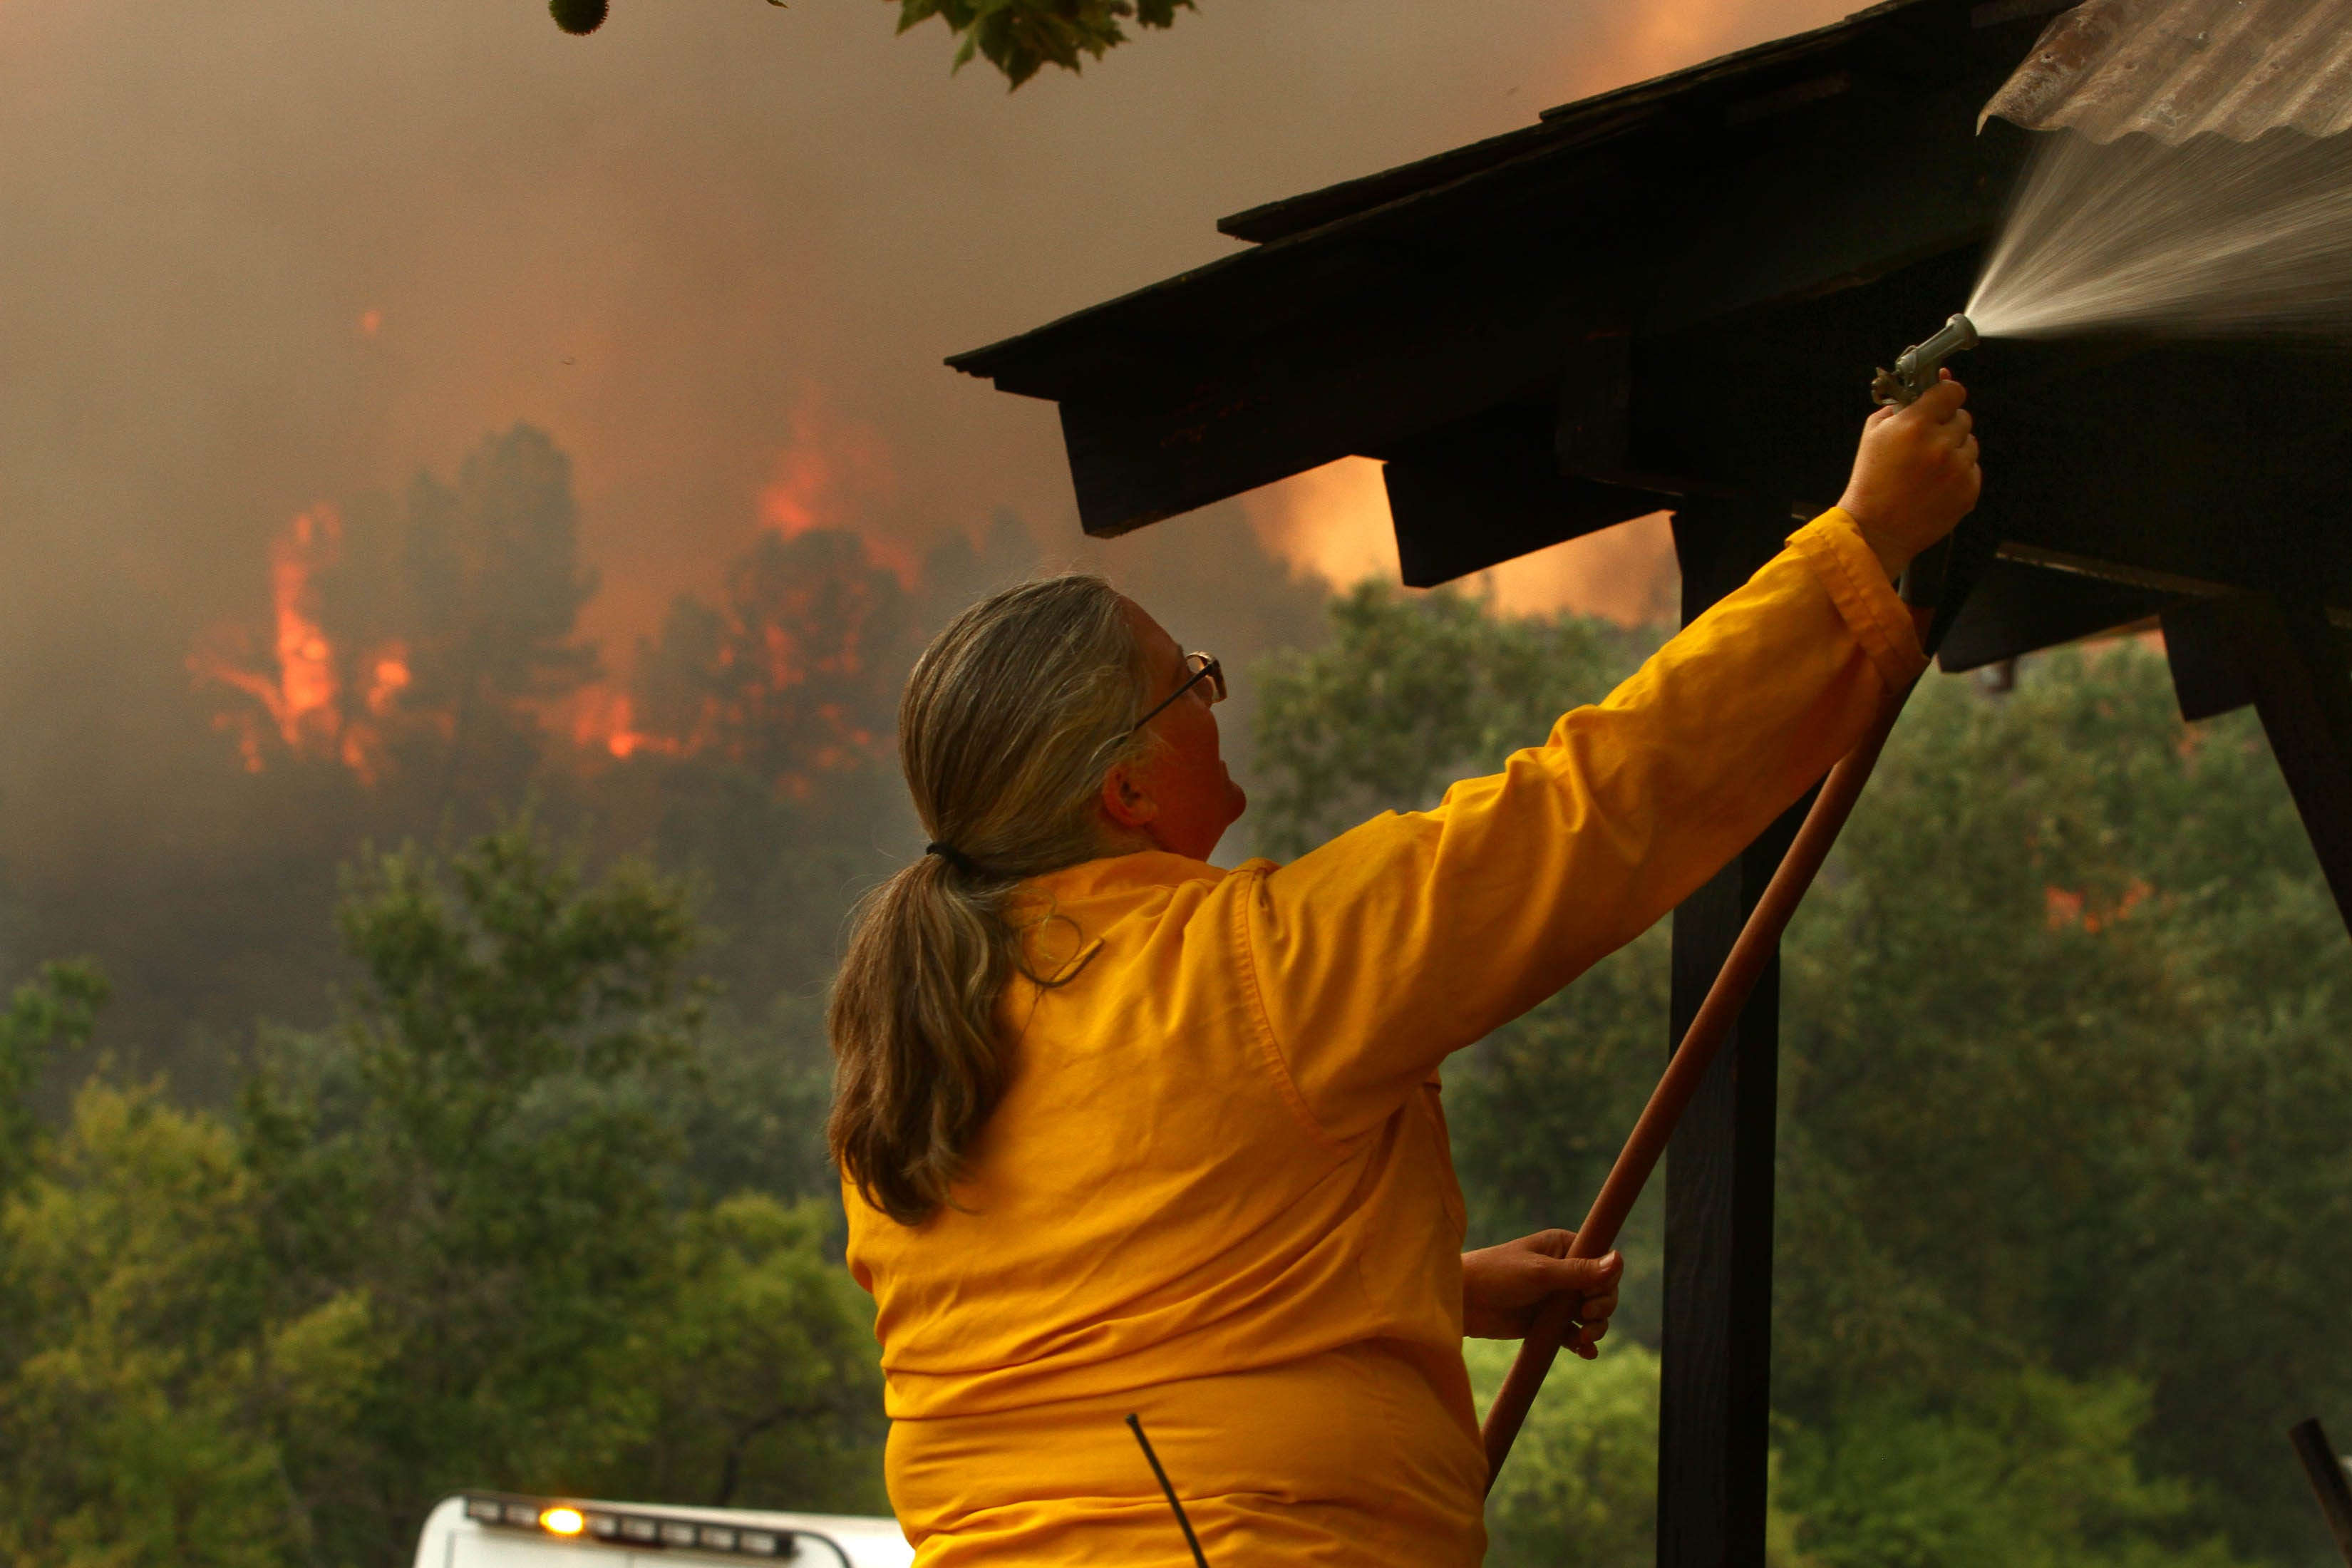 Raging wildfire threatens Redding, Shasta in Northern California, kills at least 1 person